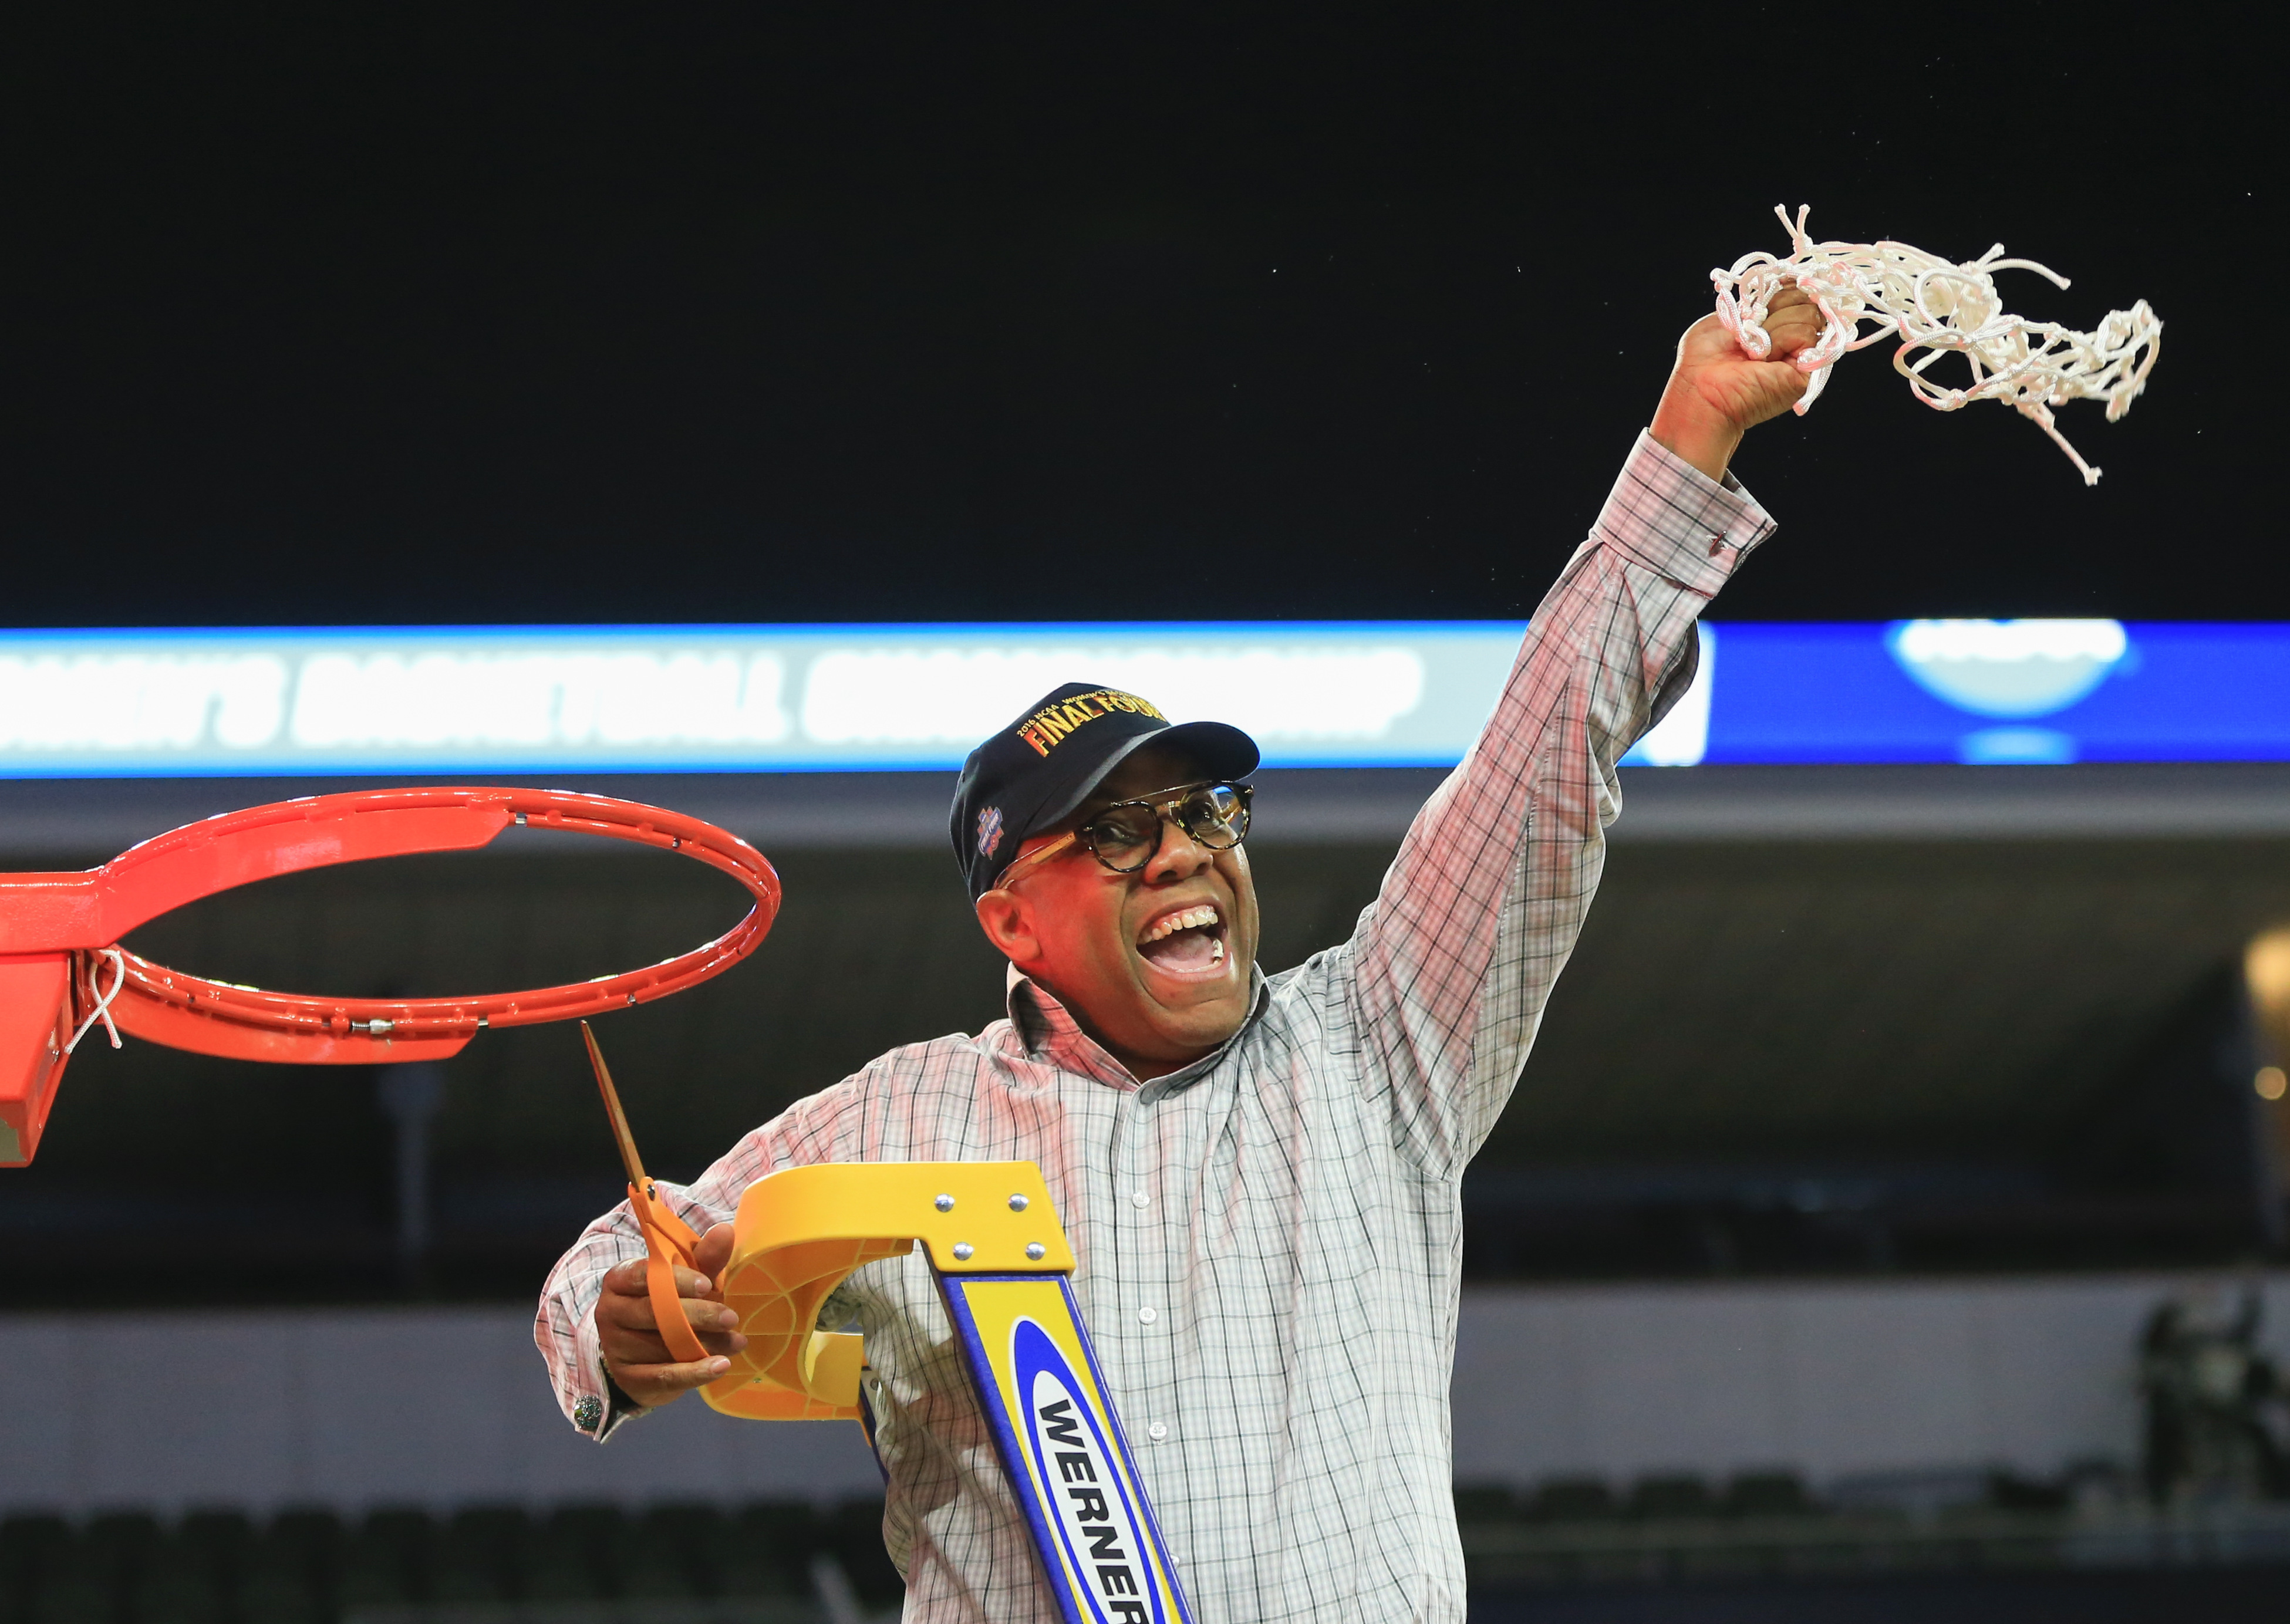 Syracuse coach Quentin Hillsman celebrates as he cuts the net following a women's college basketball regional final against Tennessee in the NCAA Tournament in Sioux Falls, S.D., Sunday, March 27, 2016. Syracuse won 89-67. (AP Photo/Nati Harnik)